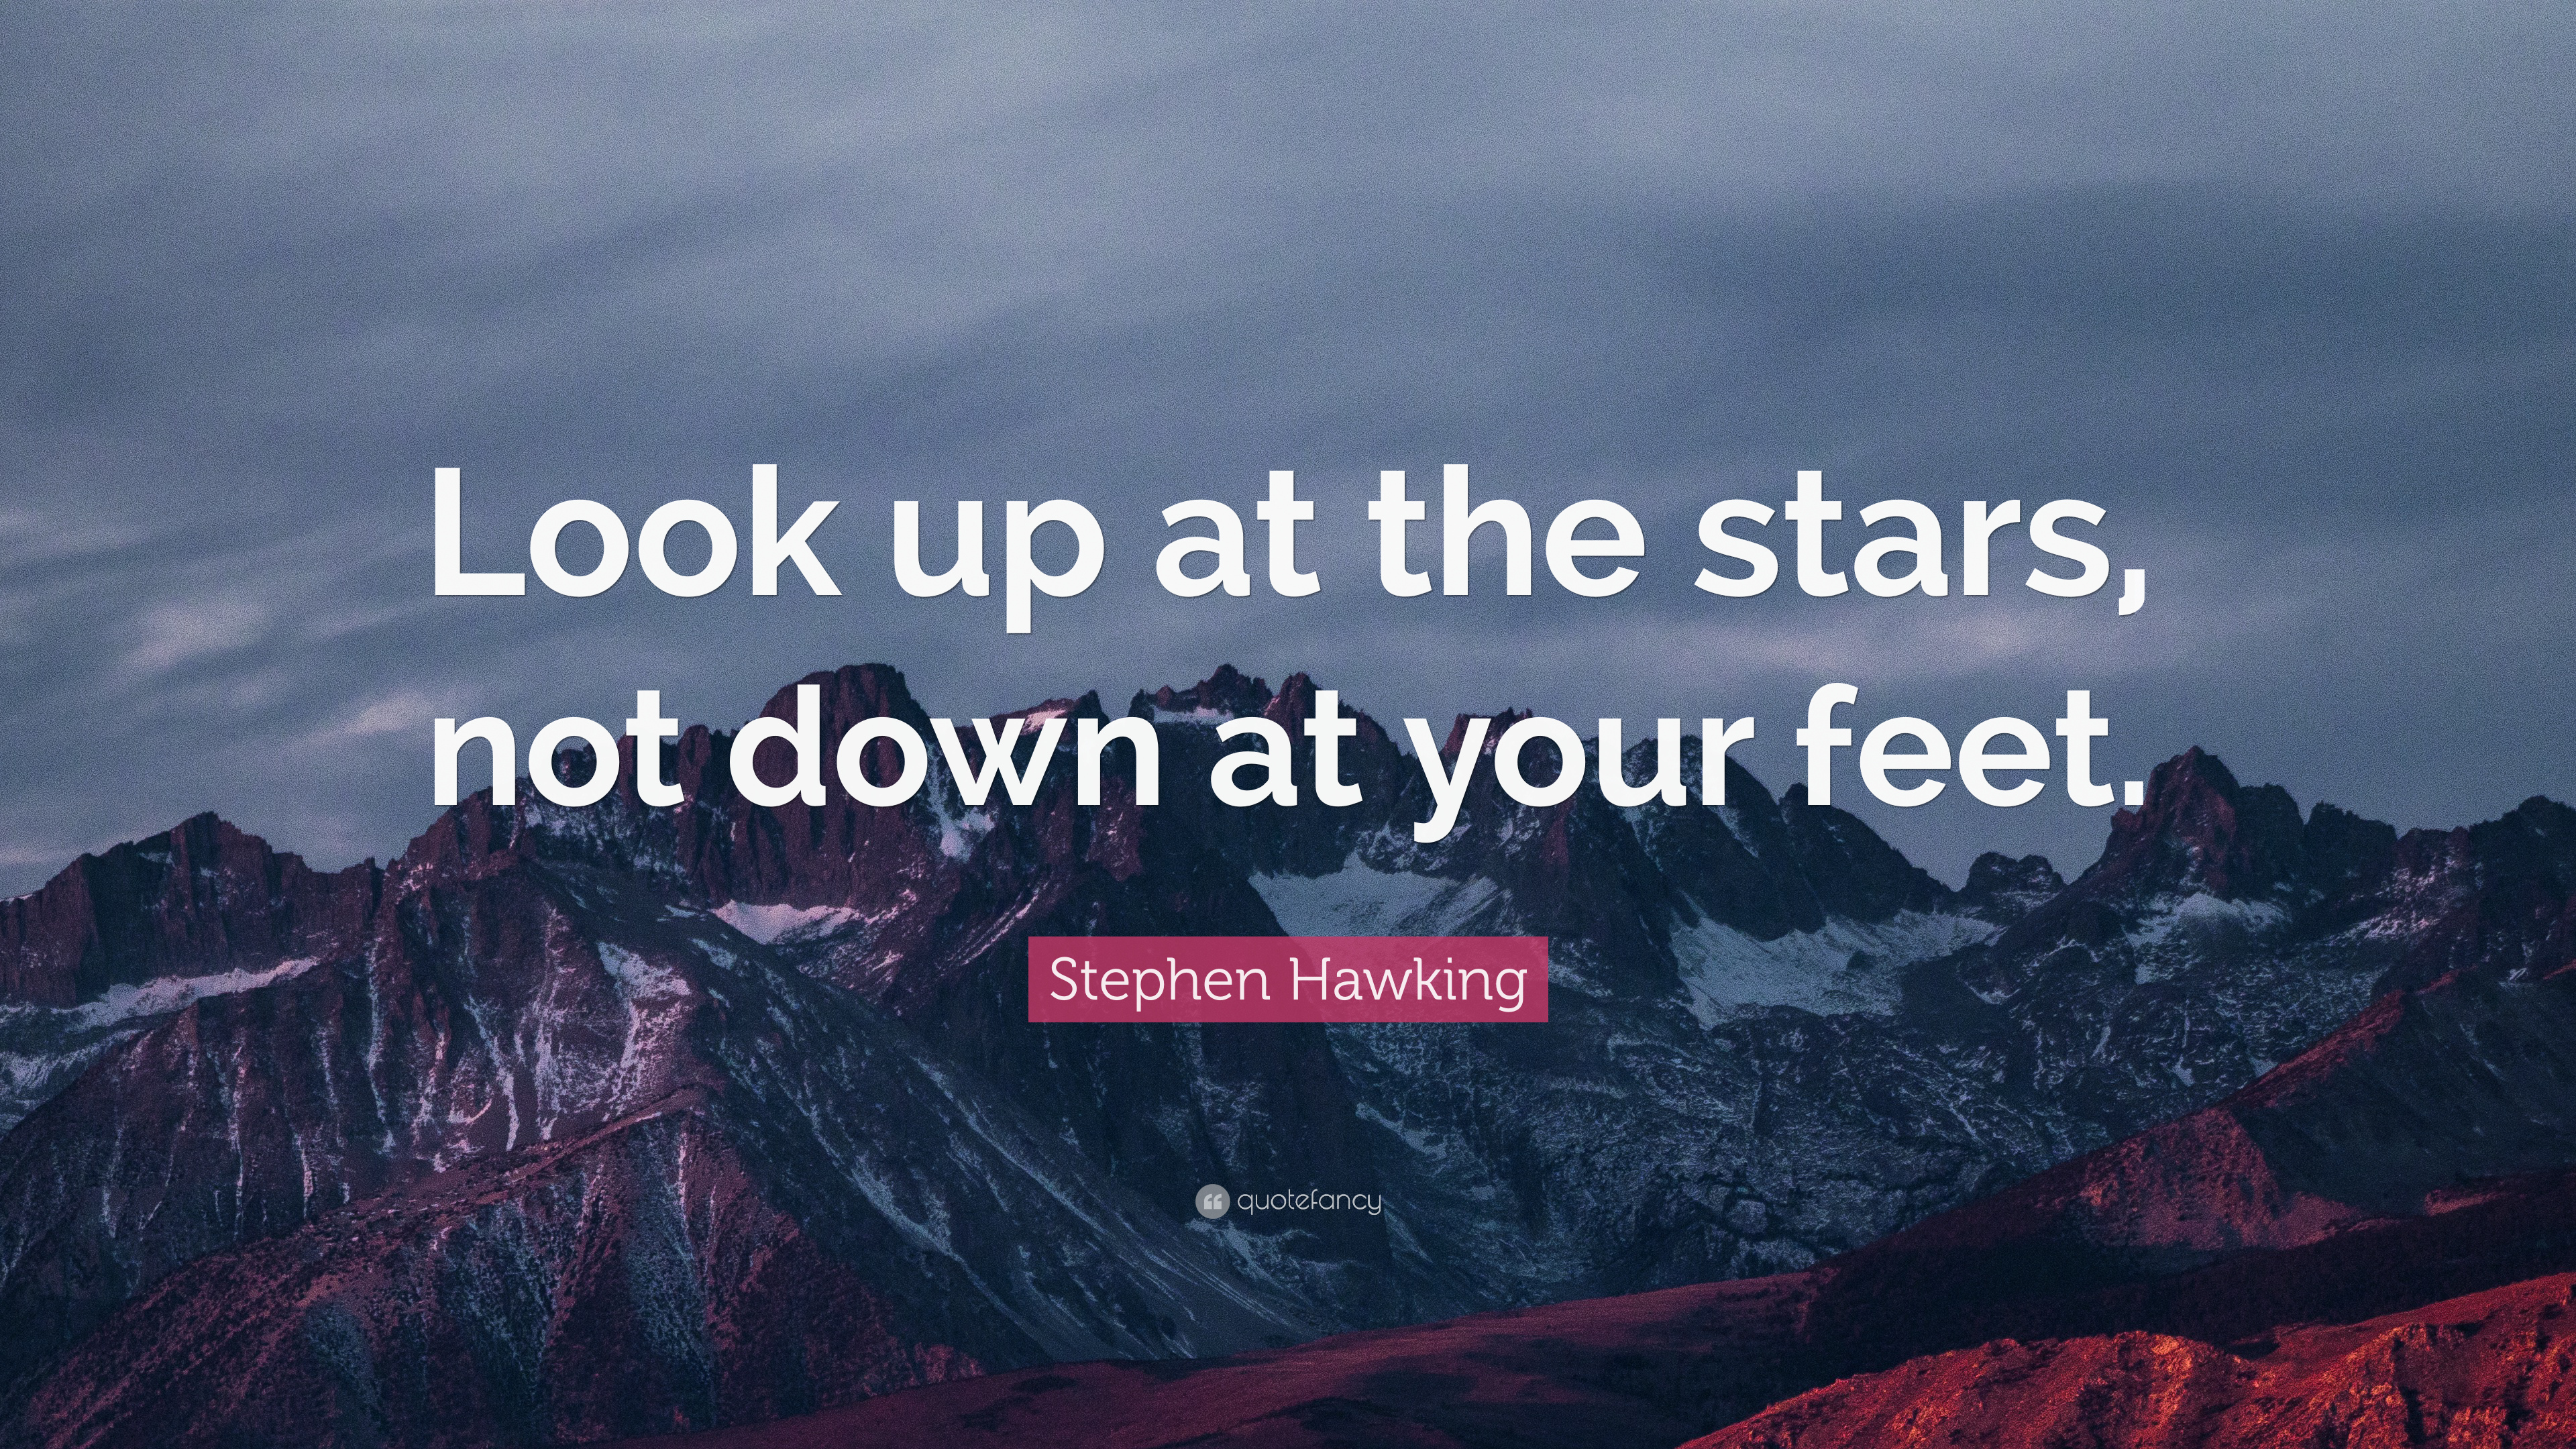 John Lennon Quotes Wallpaper Stephen Hawking Quote Look Up At The Stars Not Down At